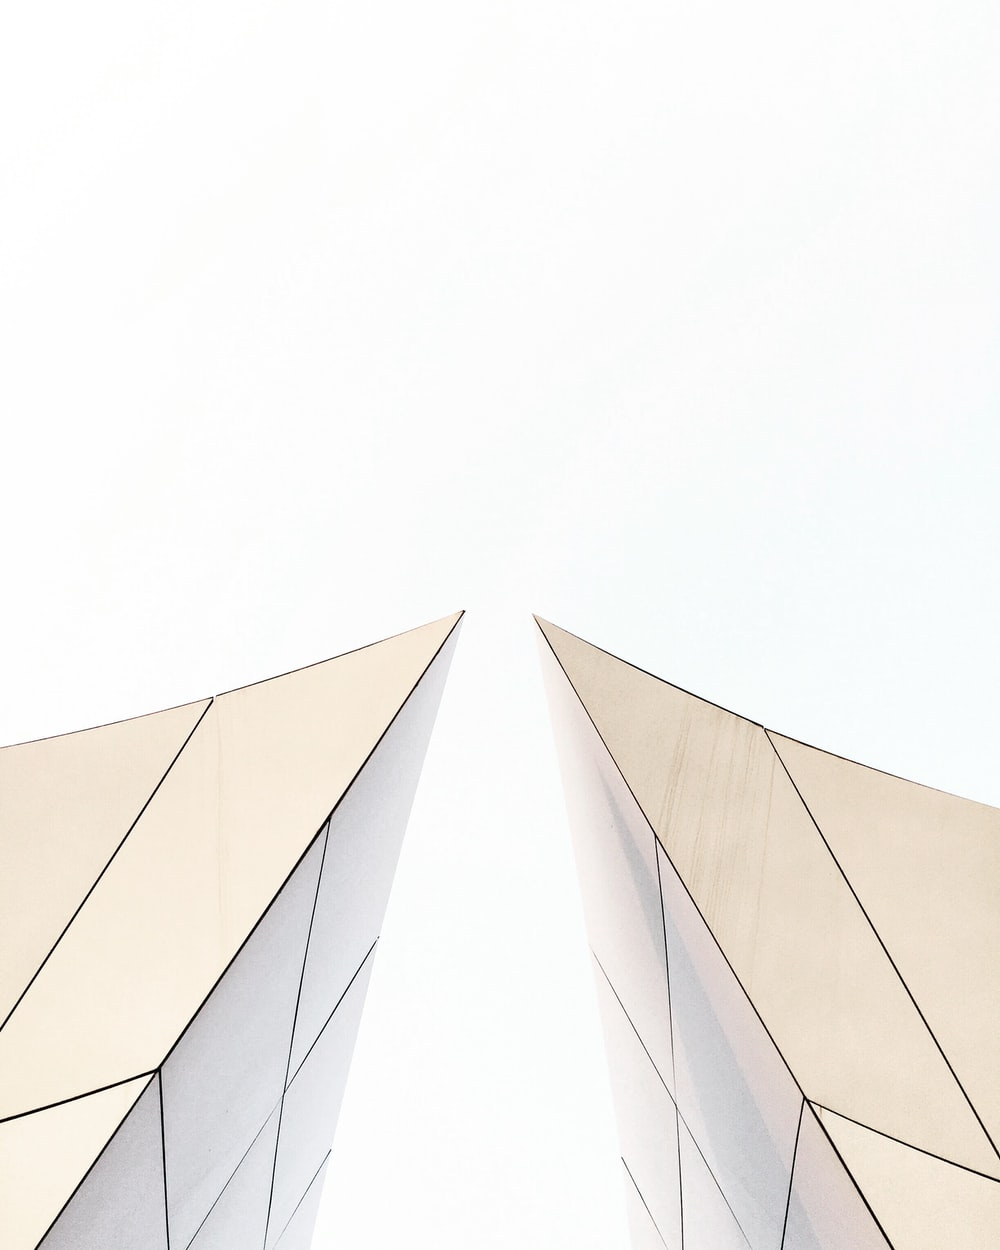 two white buildings about to touch each other's peak